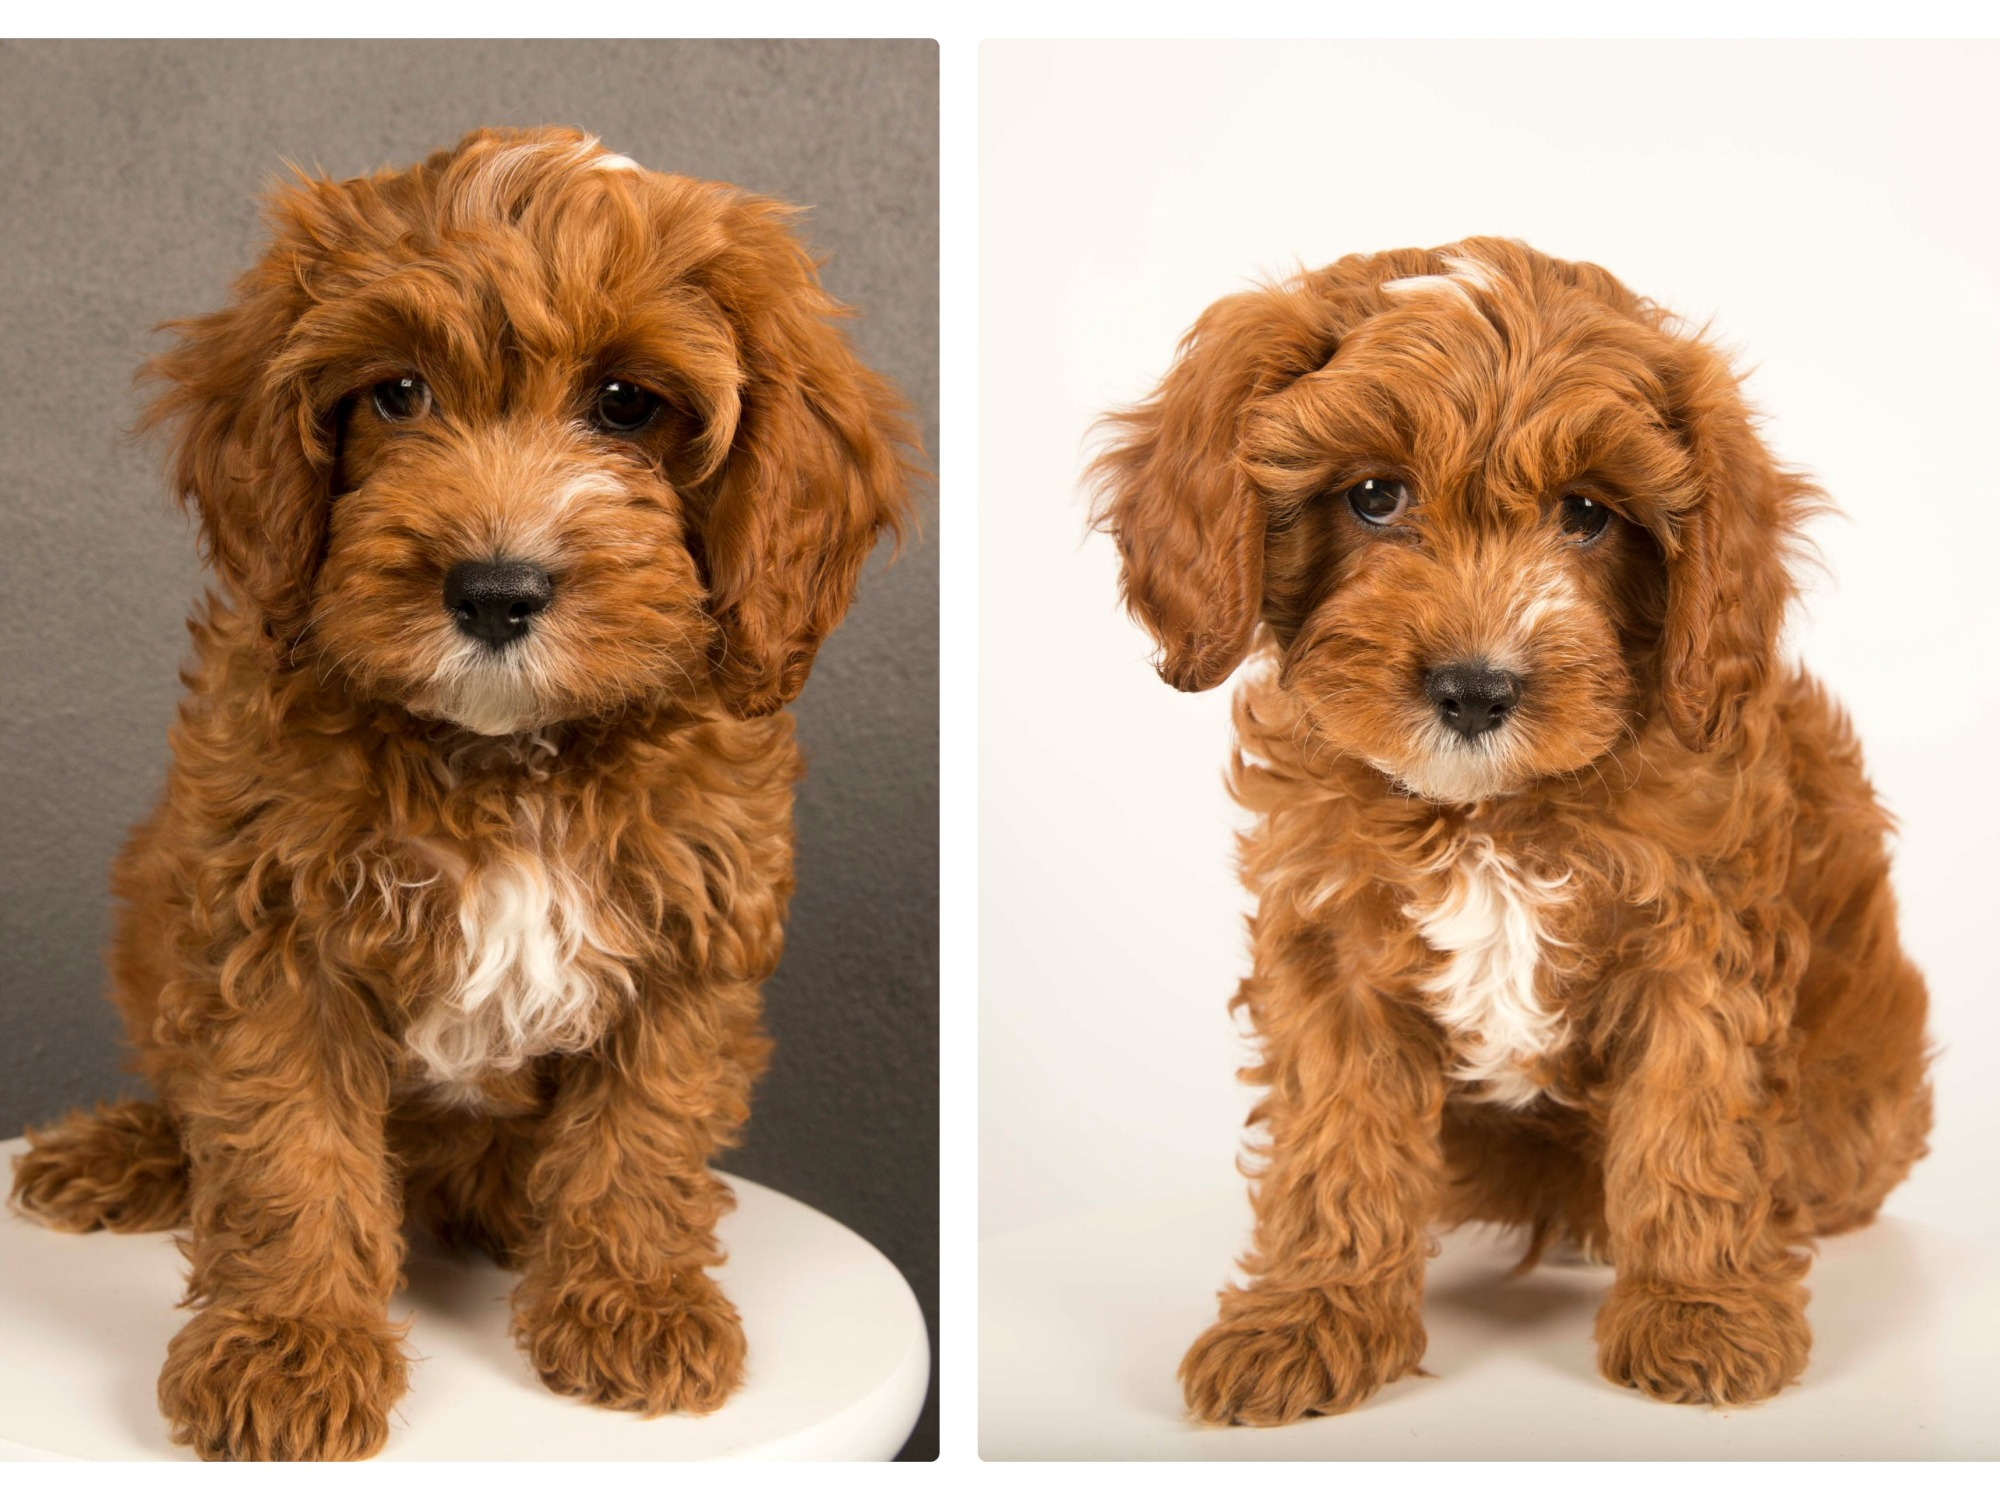 Harley the cavoodle